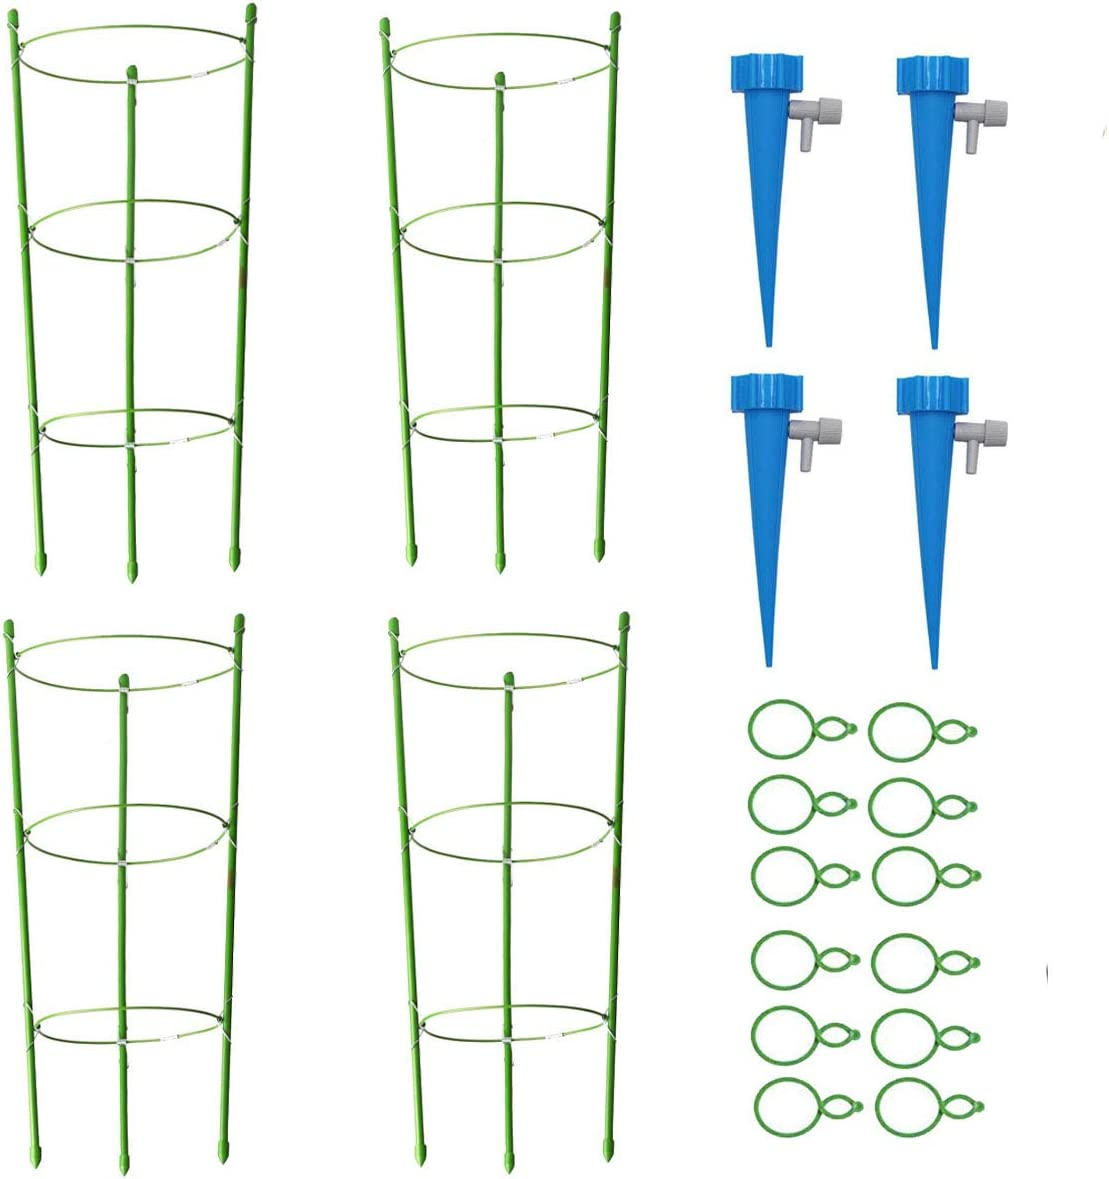 """IDOXE 4Pack Sturdy Garden Plant Support Tomato Cage, 18"""" Trellis for Climbing Plants, Plant Trellis Kits with 4 Self Watering Spikes 12 Plant Clips Hoop (18"""") for Vertical Climbing Plants"""